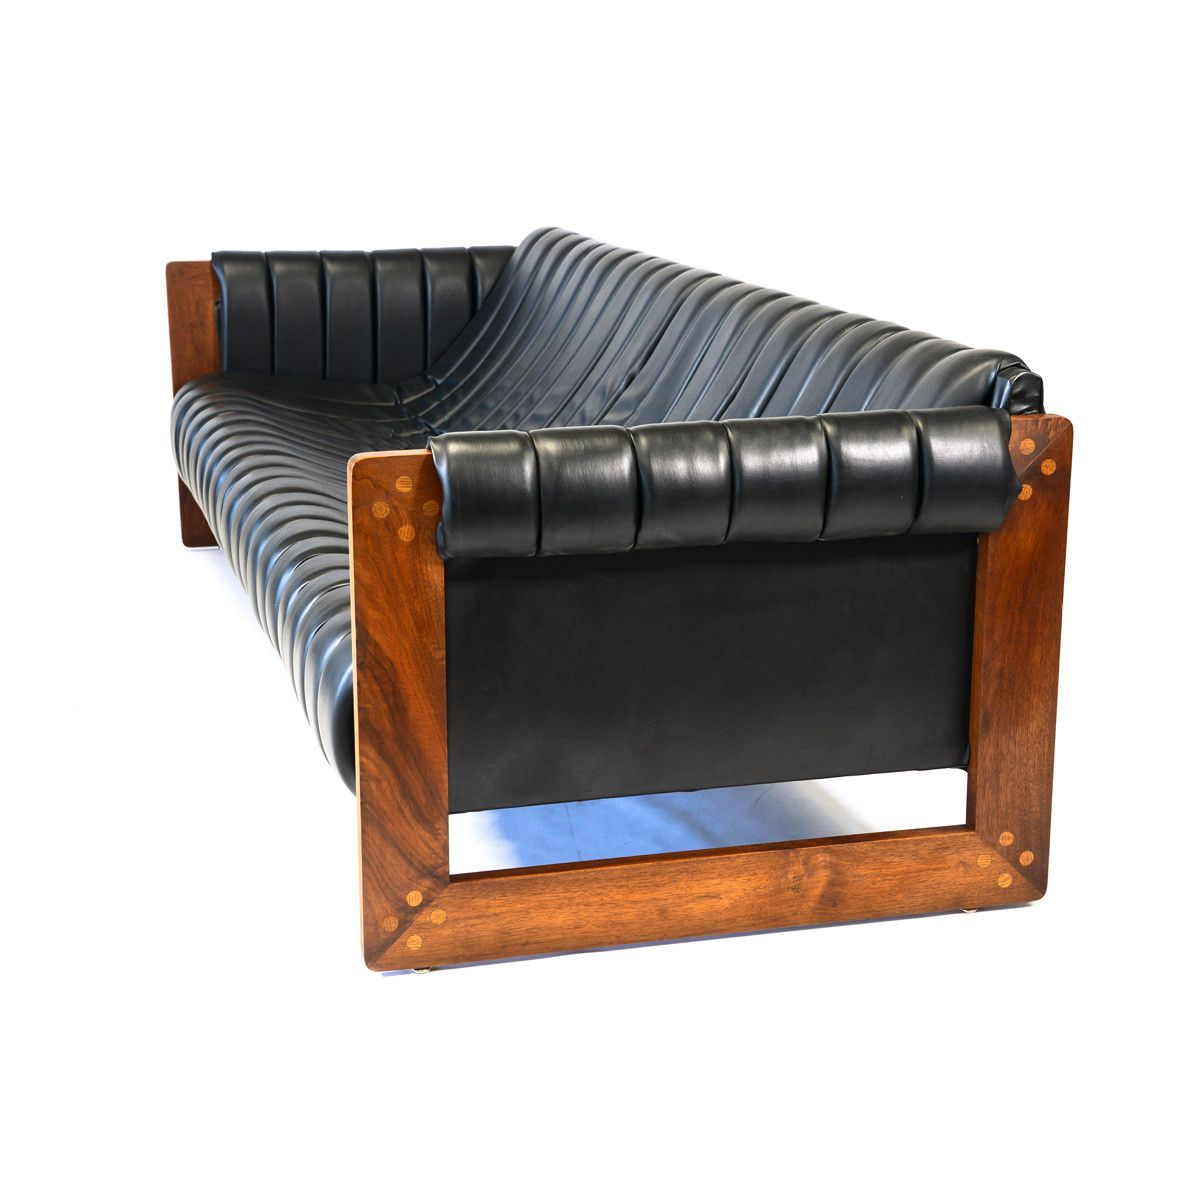 Remarkable Very Cool 1970S California Modern Sofa Very Reminiscent Of Machost Co Dining Chair Design Ideas Machostcouk